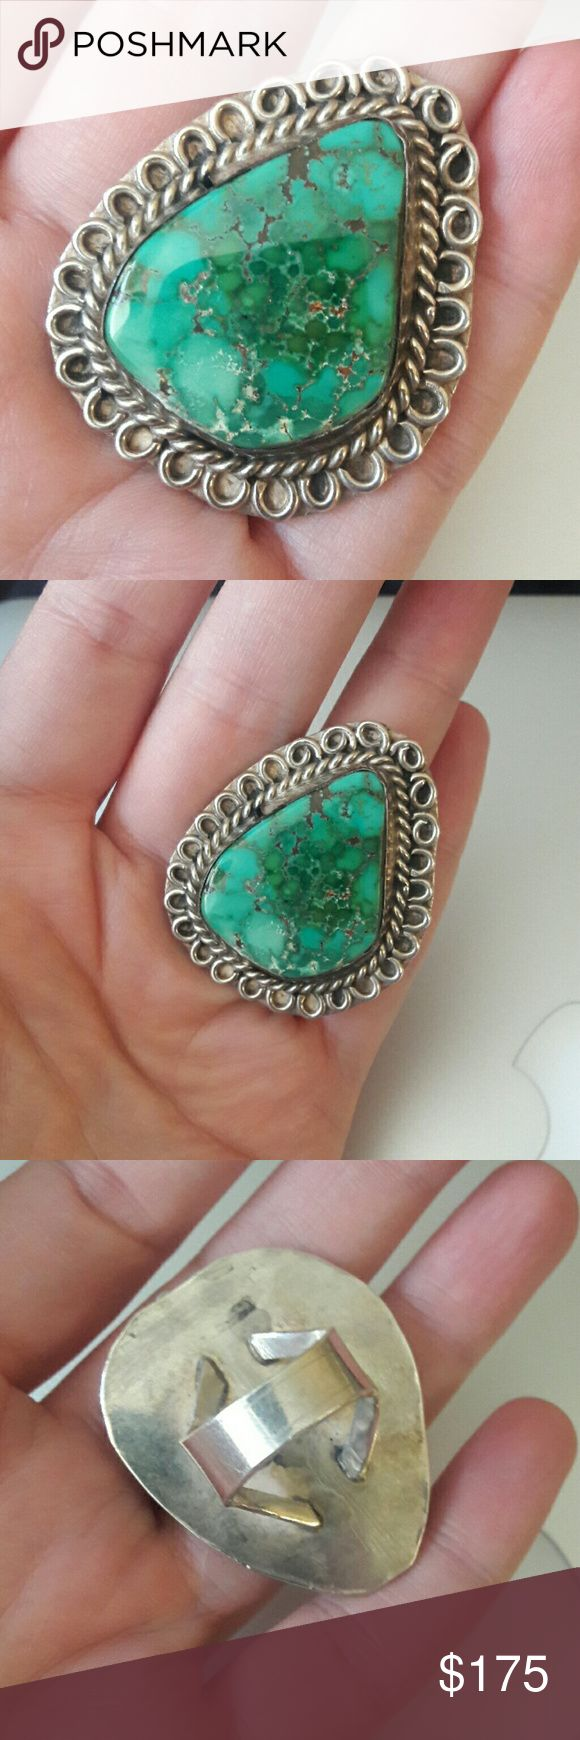 Huge Navajo Vintage Sterling Turquoise Ring Tested for Sterling, beautiful huge stone, Navajo great green stone with copper veins. Vintage Jewelry Rings